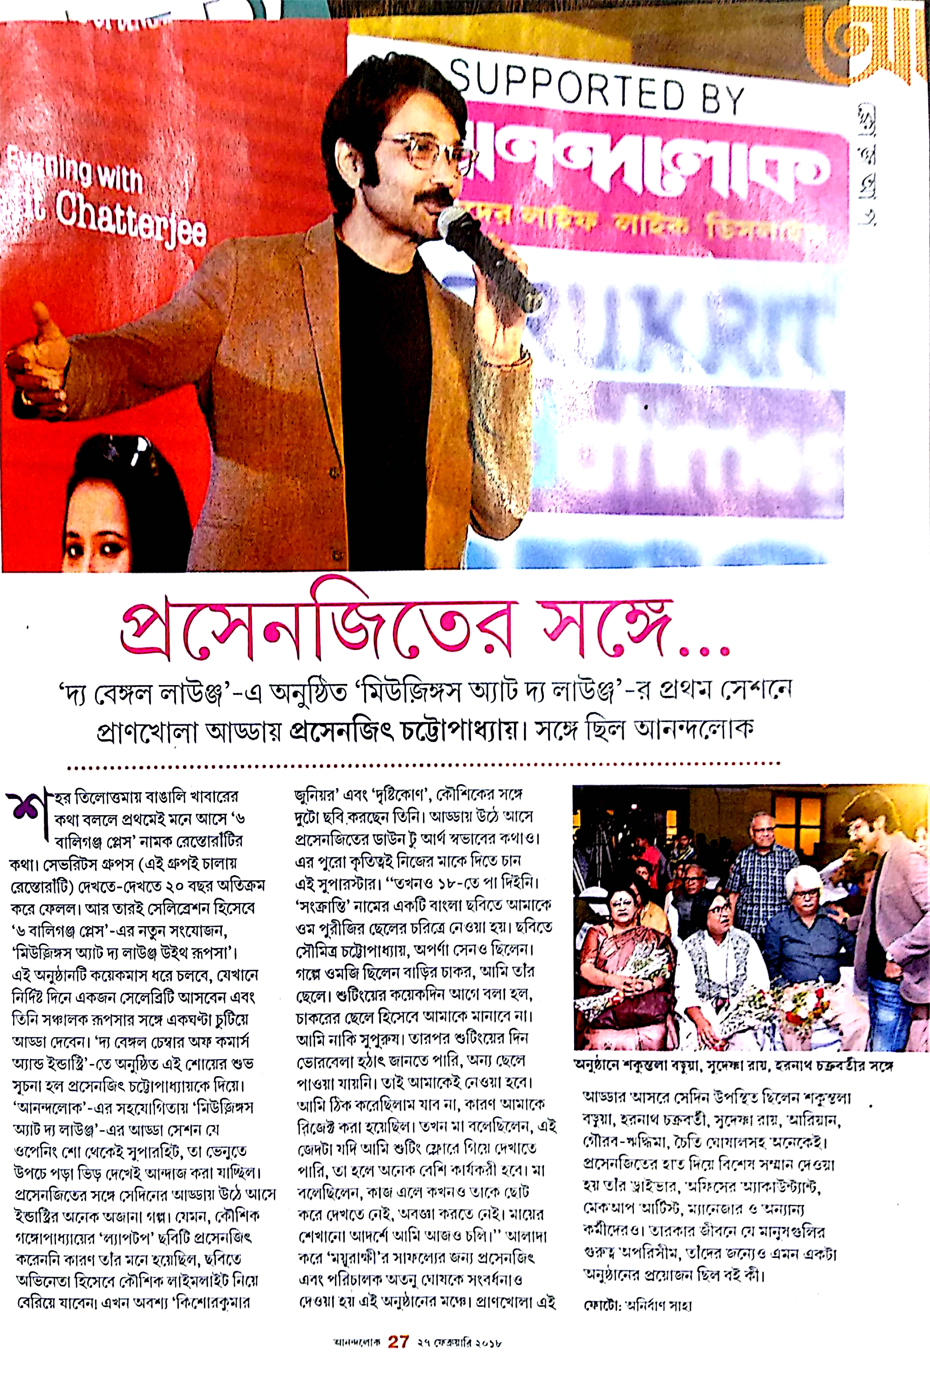 Anandalok captures Musings @ The Lounge